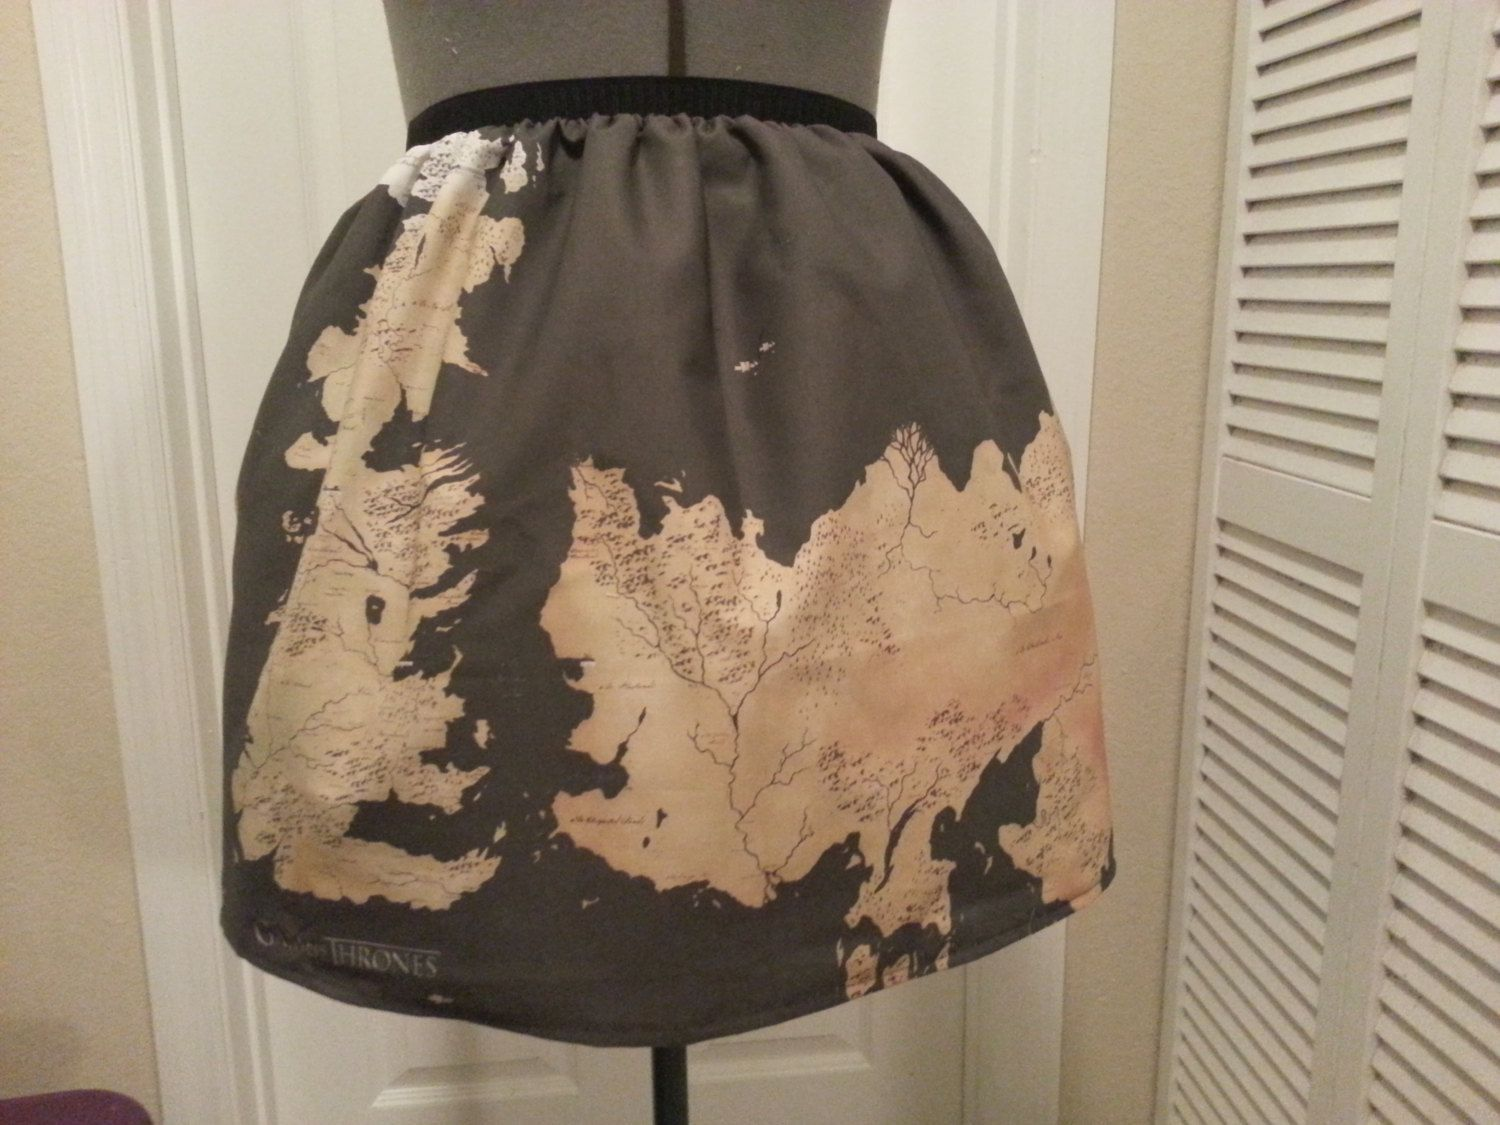 Oh my god love game of throne inspired skirt world map made to game of throne inspired skirt world map made to order 4500 via etsy gumiabroncs Gallery